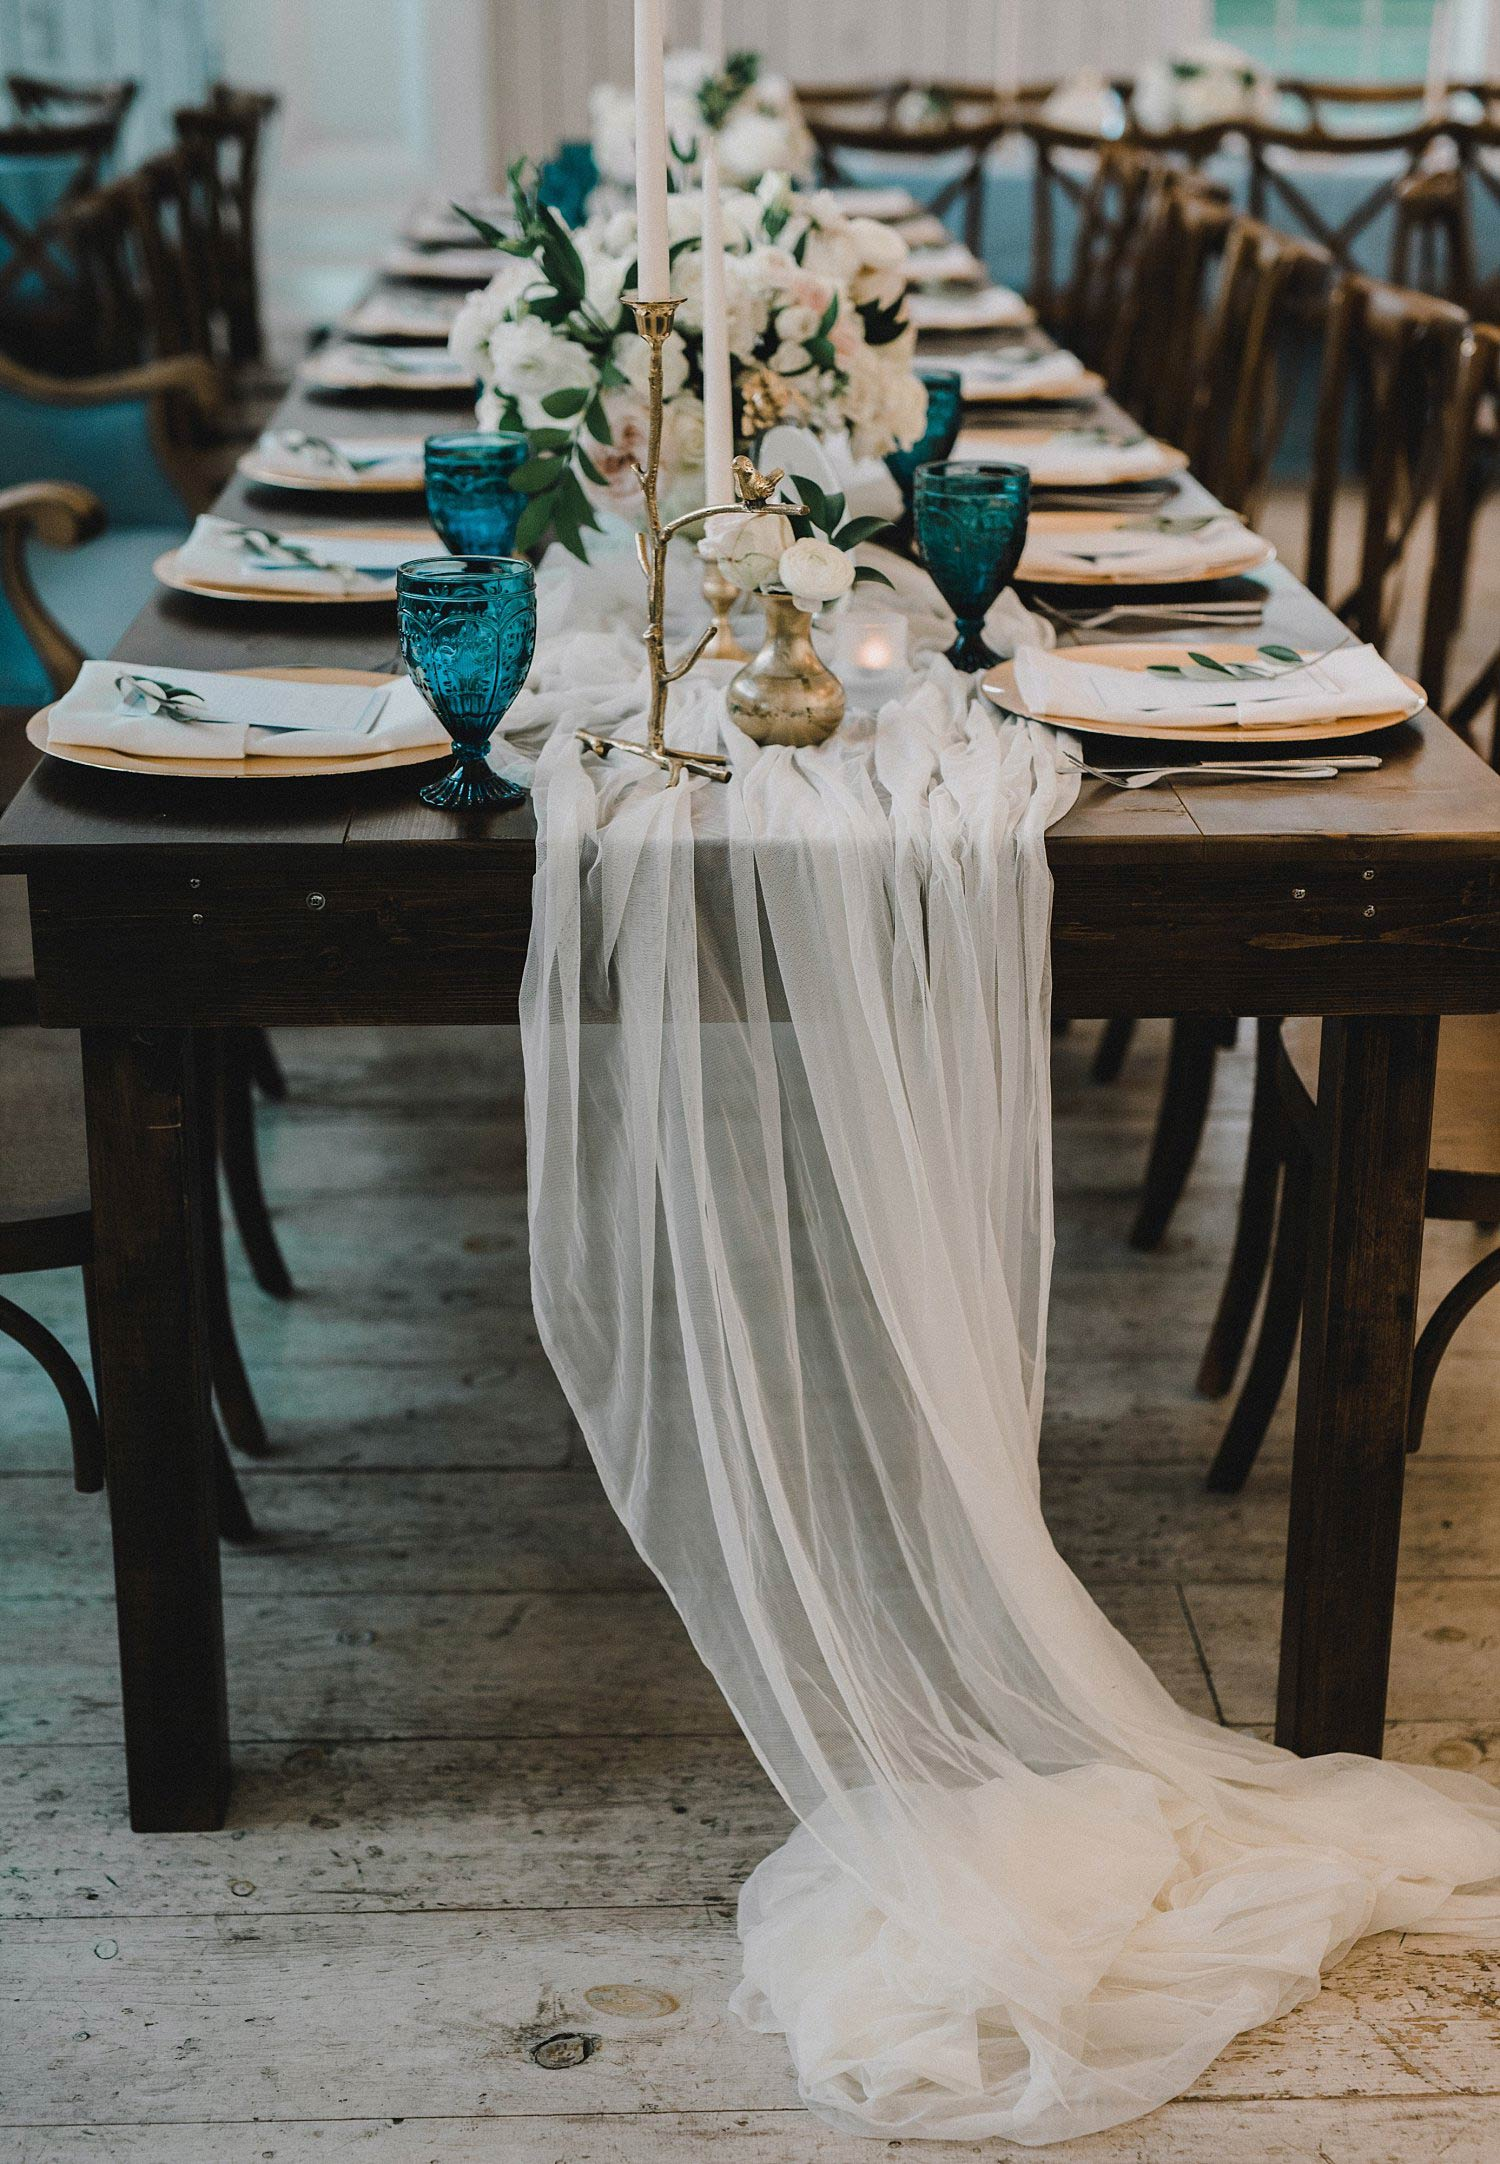 Long white runner on farm table head table with blue vintage goblets